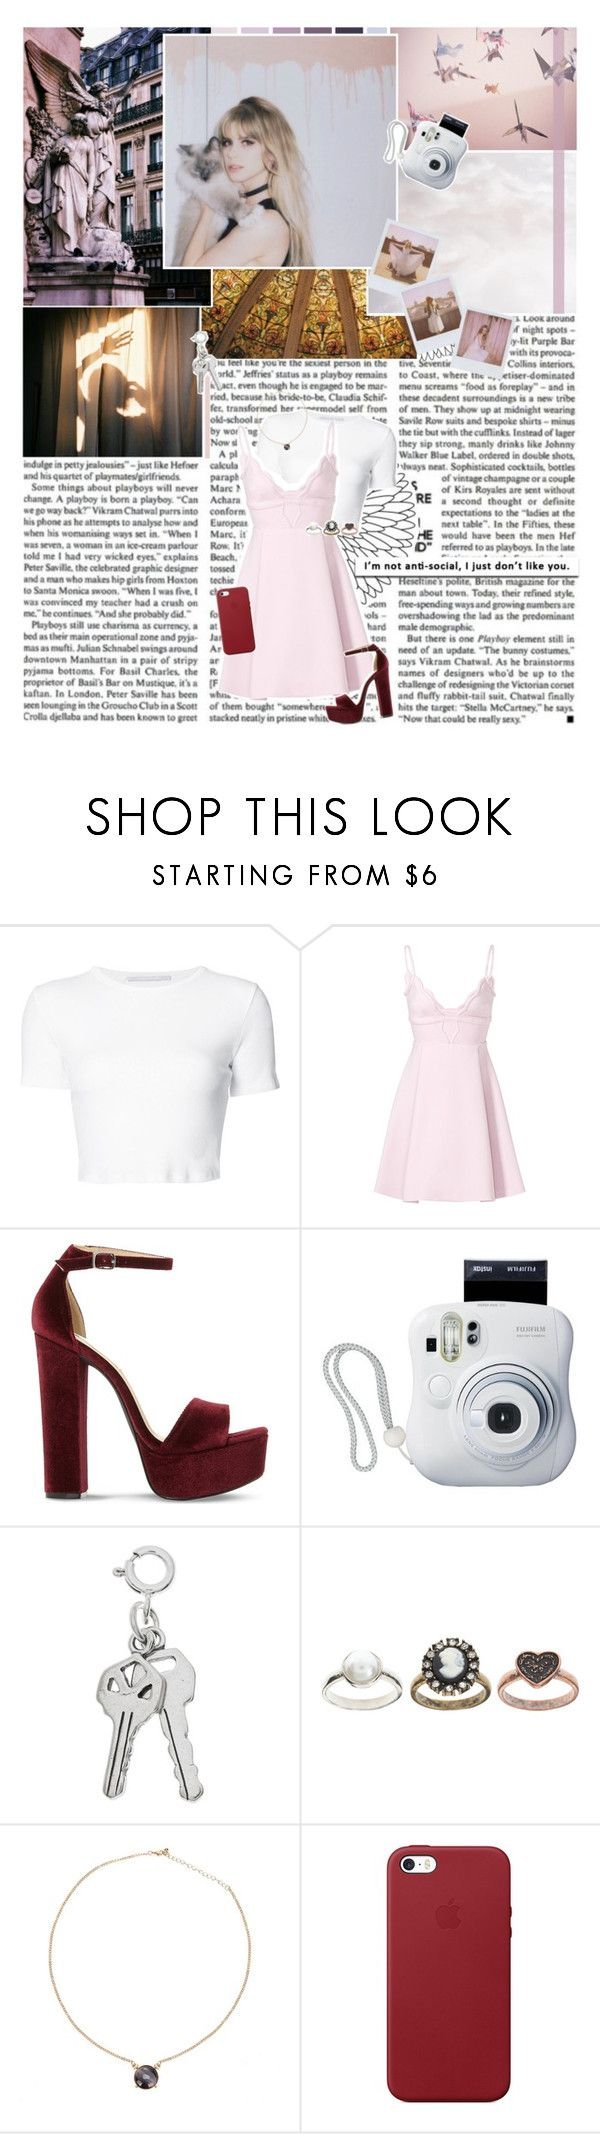 """""""// 419 //"""" by cidinha-001 ❤ liked on Polyvore featuring Rosetta Getty, Giambattista Valli, Steve Madden, Band of Outsiders, Fujifilm, ASOS and Apple"""